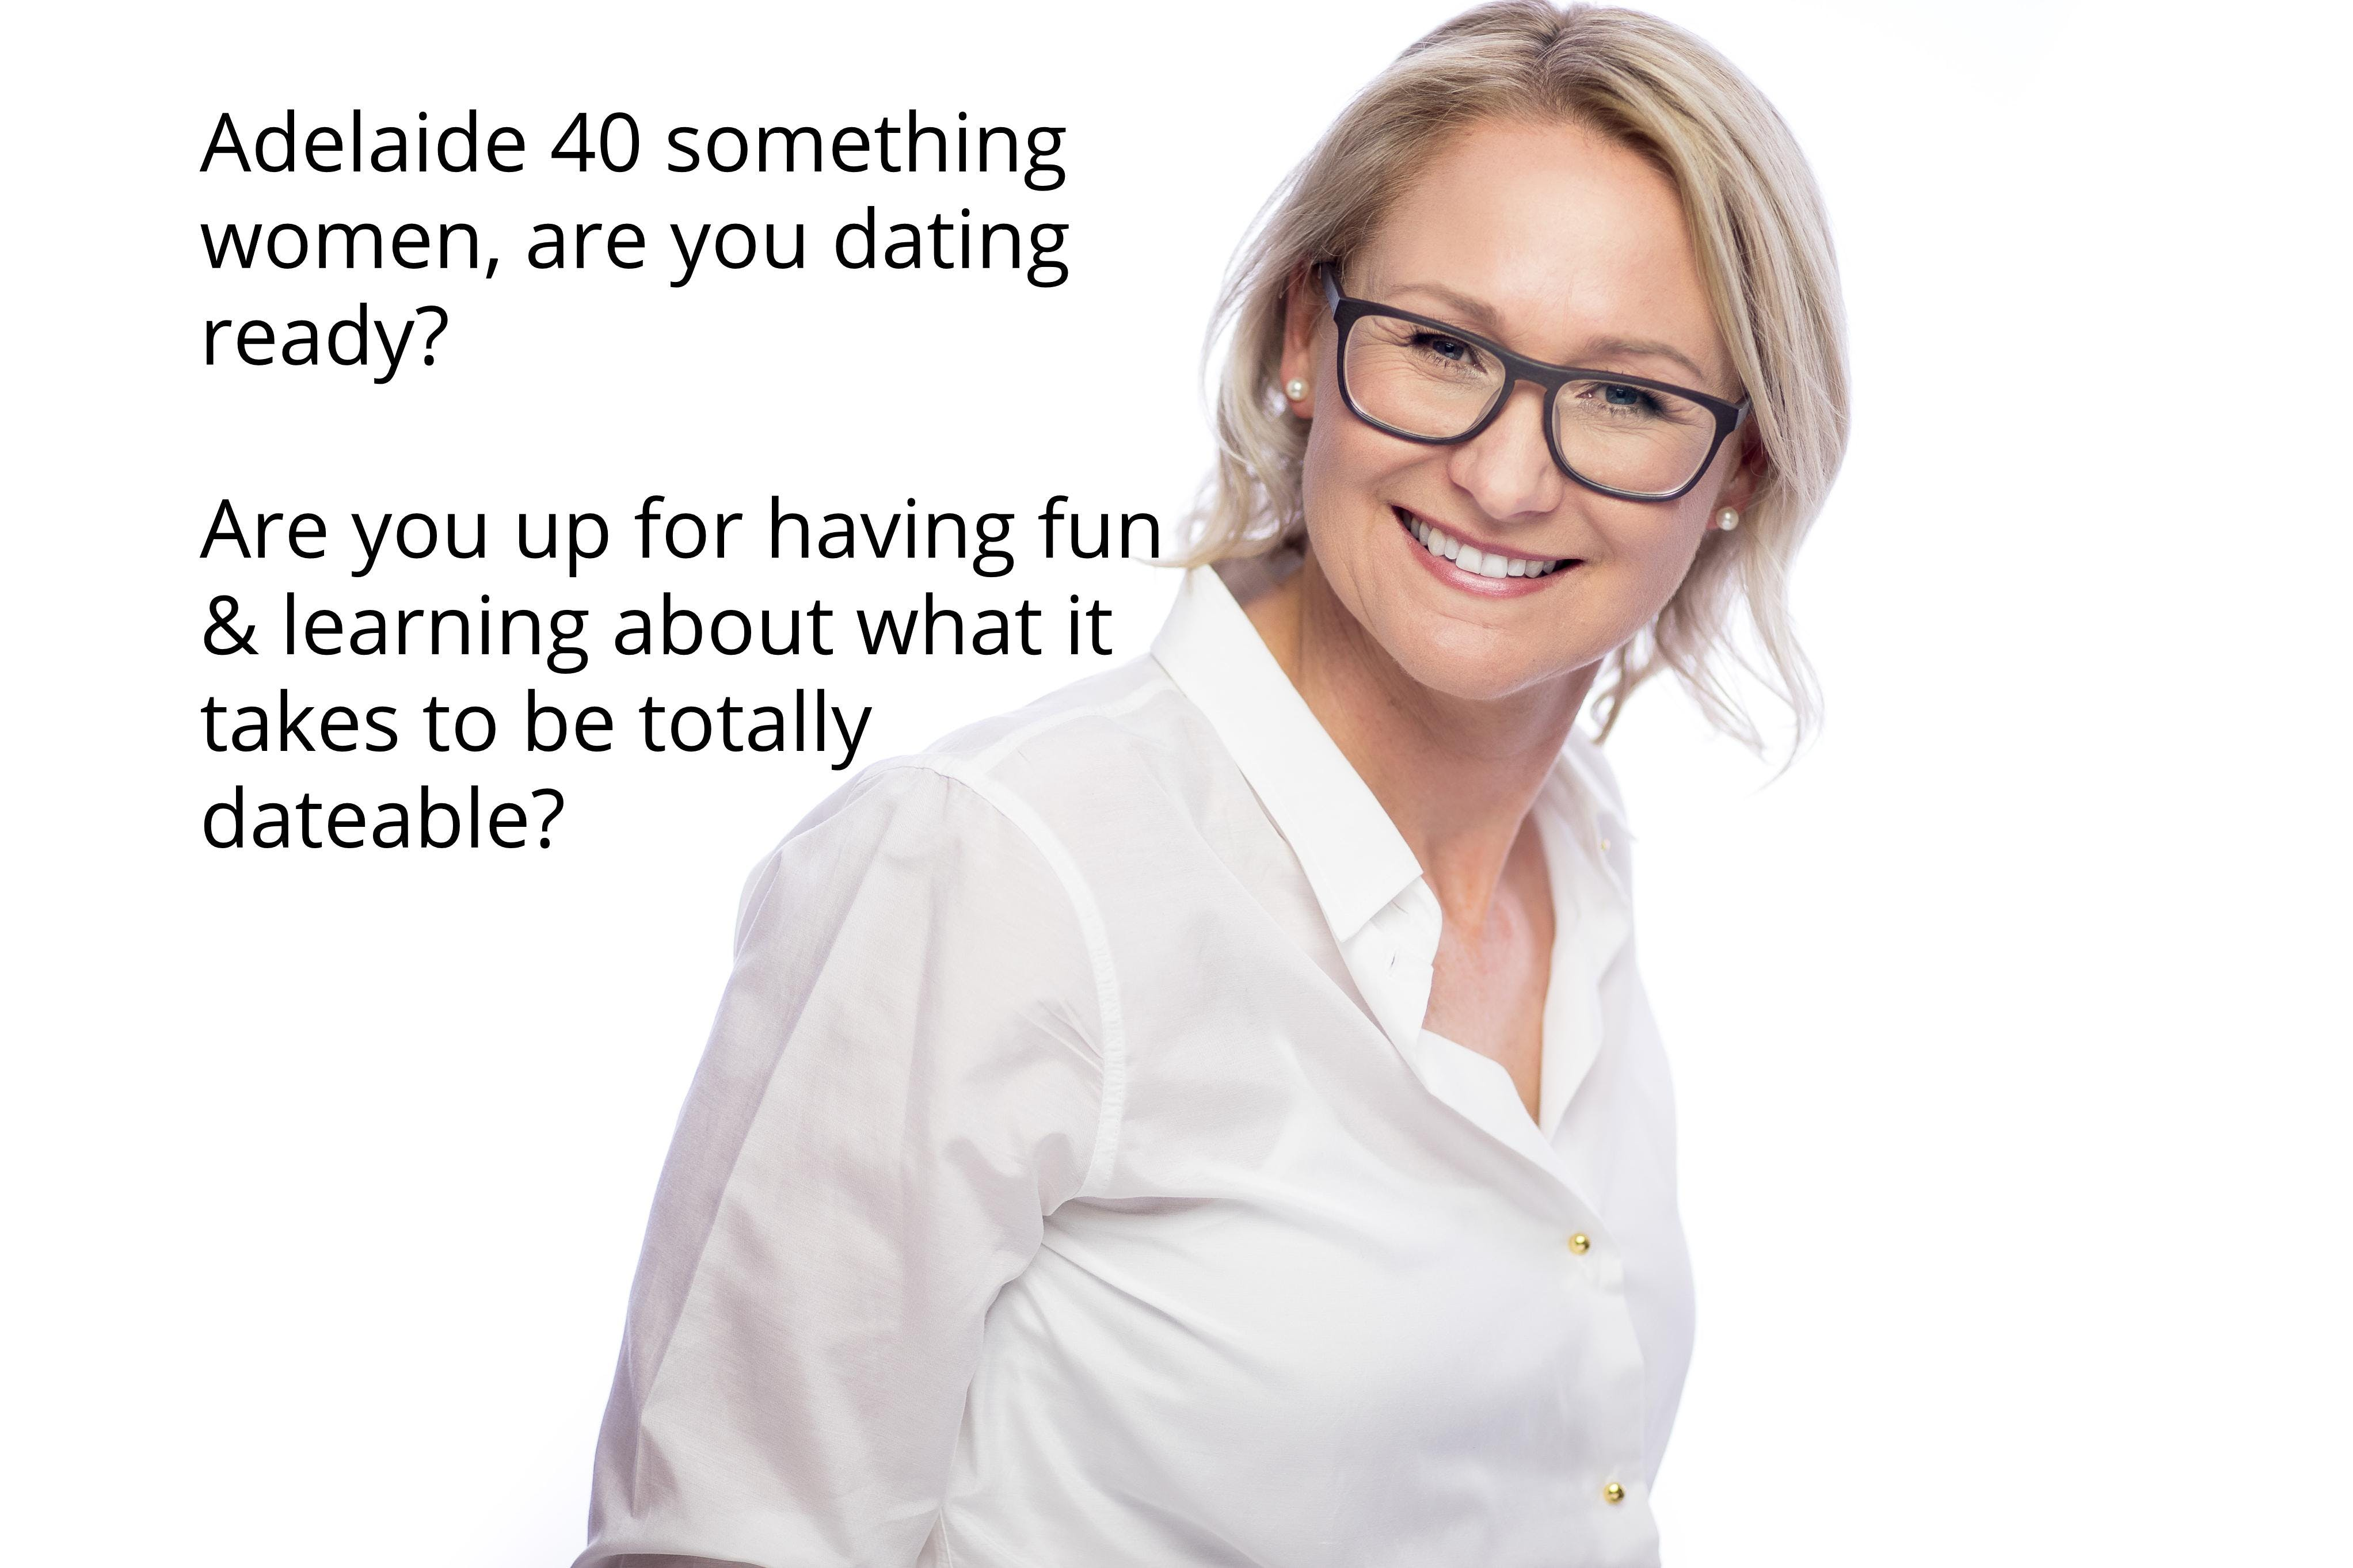 dating sites for 40 somethings